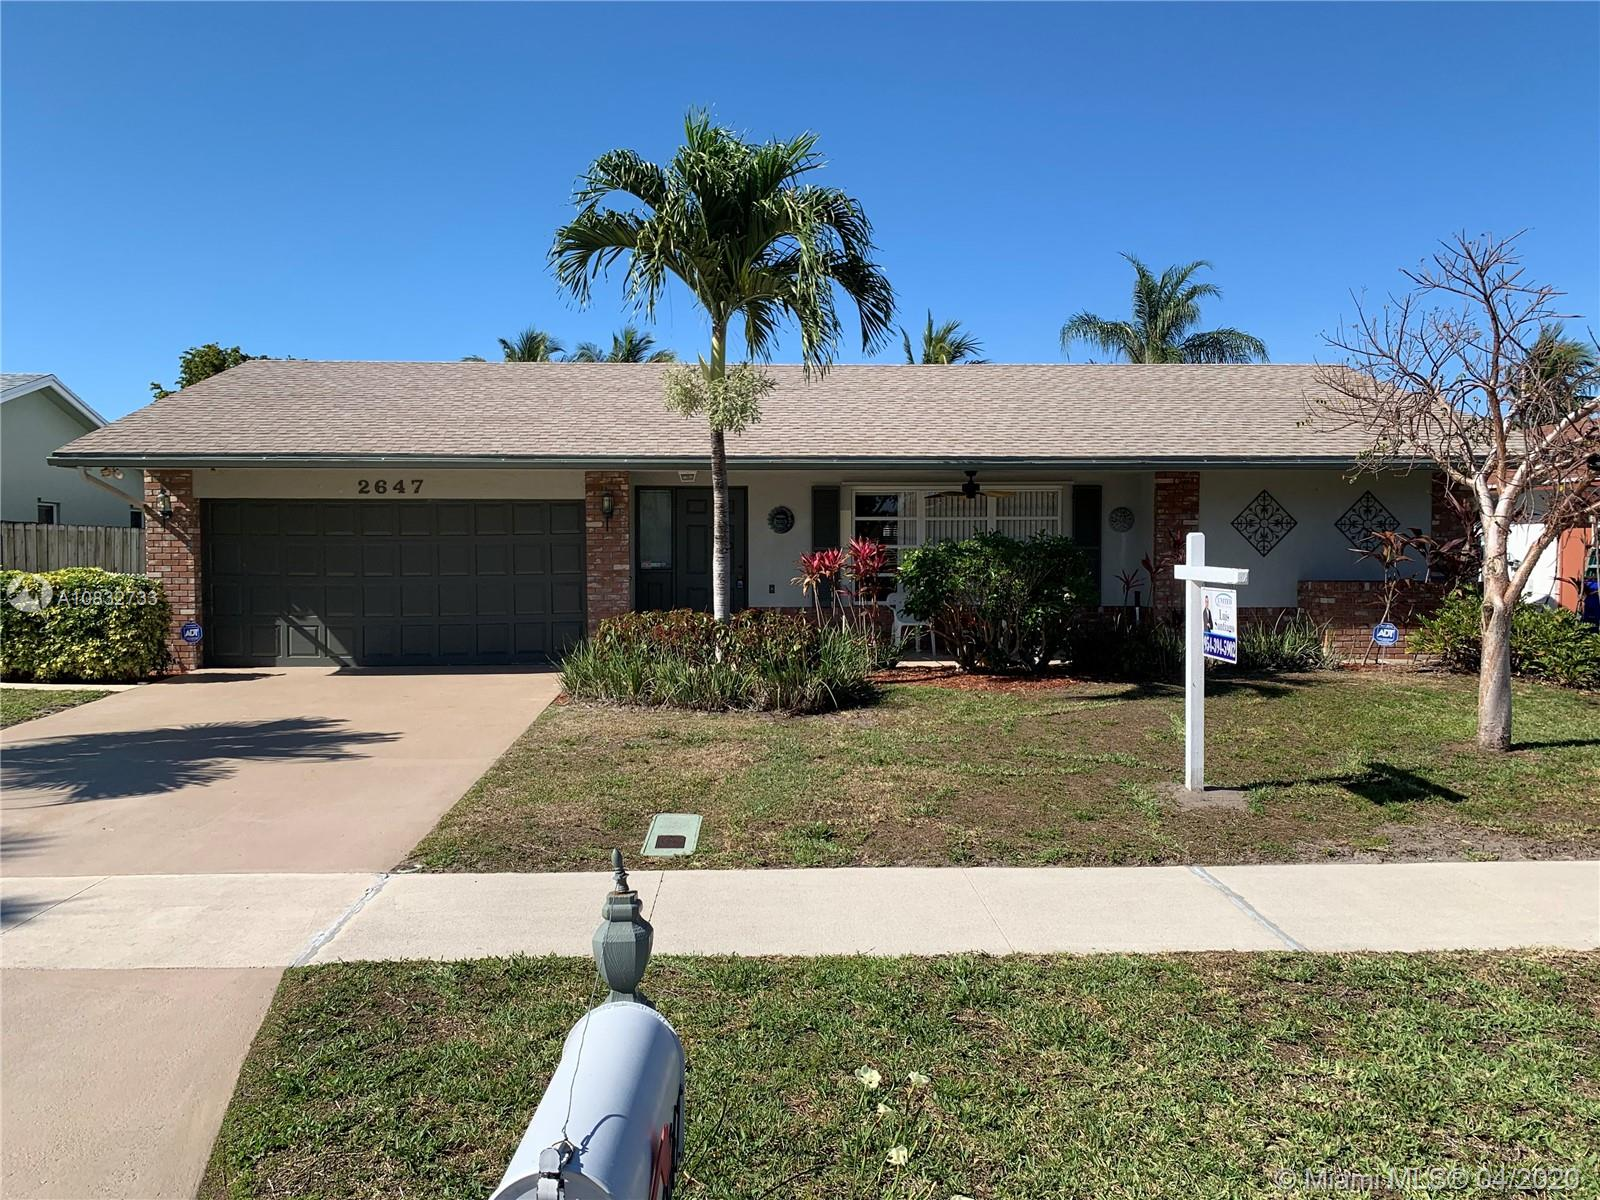 BRAND NEW ROOF JUST INSTALLED!! THIS ONE IS THE POPULAR GORHAM MODEL, (ONLY MODEL WITH A SPLIT BEDROOM PLAN). THIS HOME FEATURES A FLORIDA ROOM WITH A/C AND HEAT, GARAGE ALSO UNDER AIR, INSIDE LAUNDRY ROOM, OPEN KITCHEN WITH BREAKFAST AREA AND SEPARATE DINING AREA, READY FOR THE FAMILY TO MOVE IN. BACK YARD FEATURES A PATIO. WINDOWS HAVE SHUTTERS AND STORM BUSTERS FOR PROTECTION. FRONT OF THE HOUSE FEATURES A COVERED SEATING AREA THAT IS PAVED. BIG ENOUGH FOR THE FAMILY, LOCATED IN DEERFIELD BEACH CLOSE TO SHOPPING, HIGHWAYS , THREE LARGE NEIGHBORHOOD PARKS AND MORE. NO HOA!